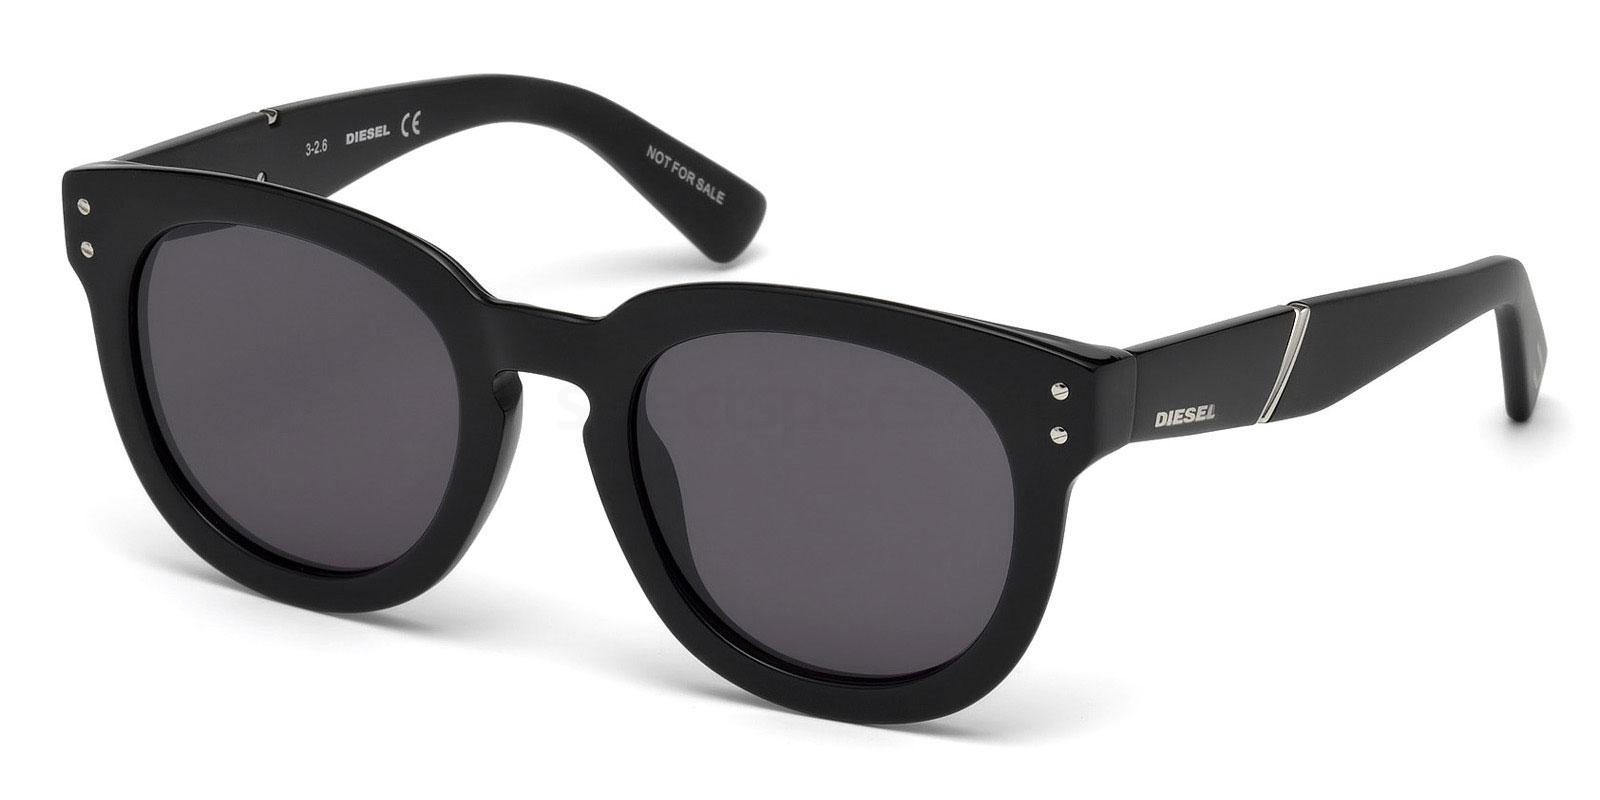 01A DL0230 Sunglasses, Diesel